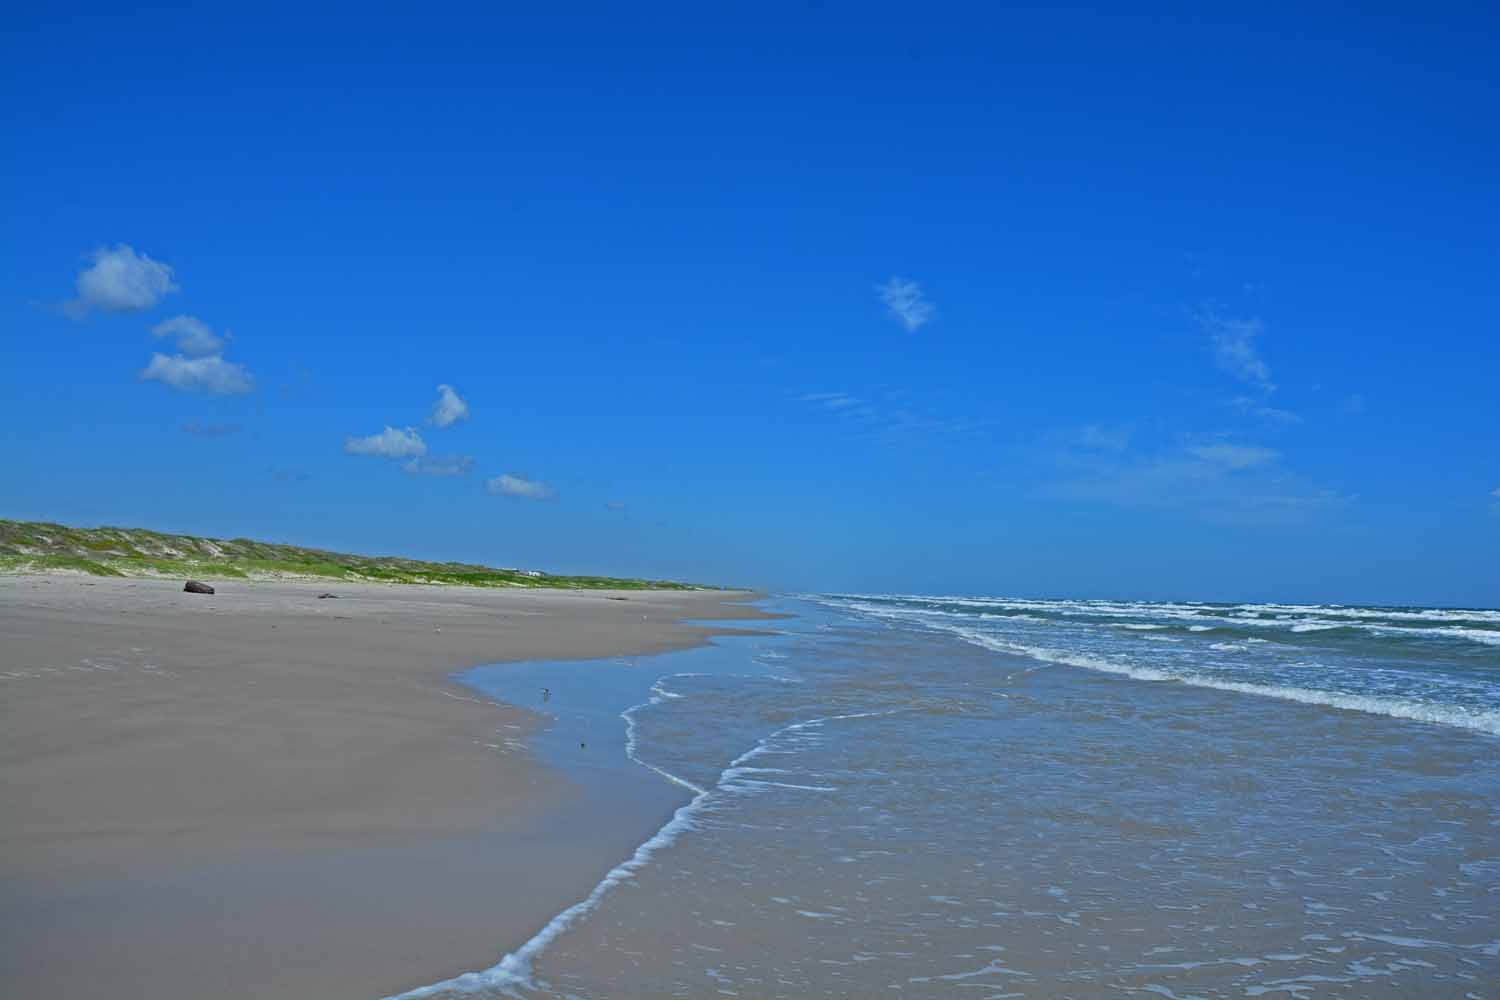 North Padre Island beach goes for over 65 miles